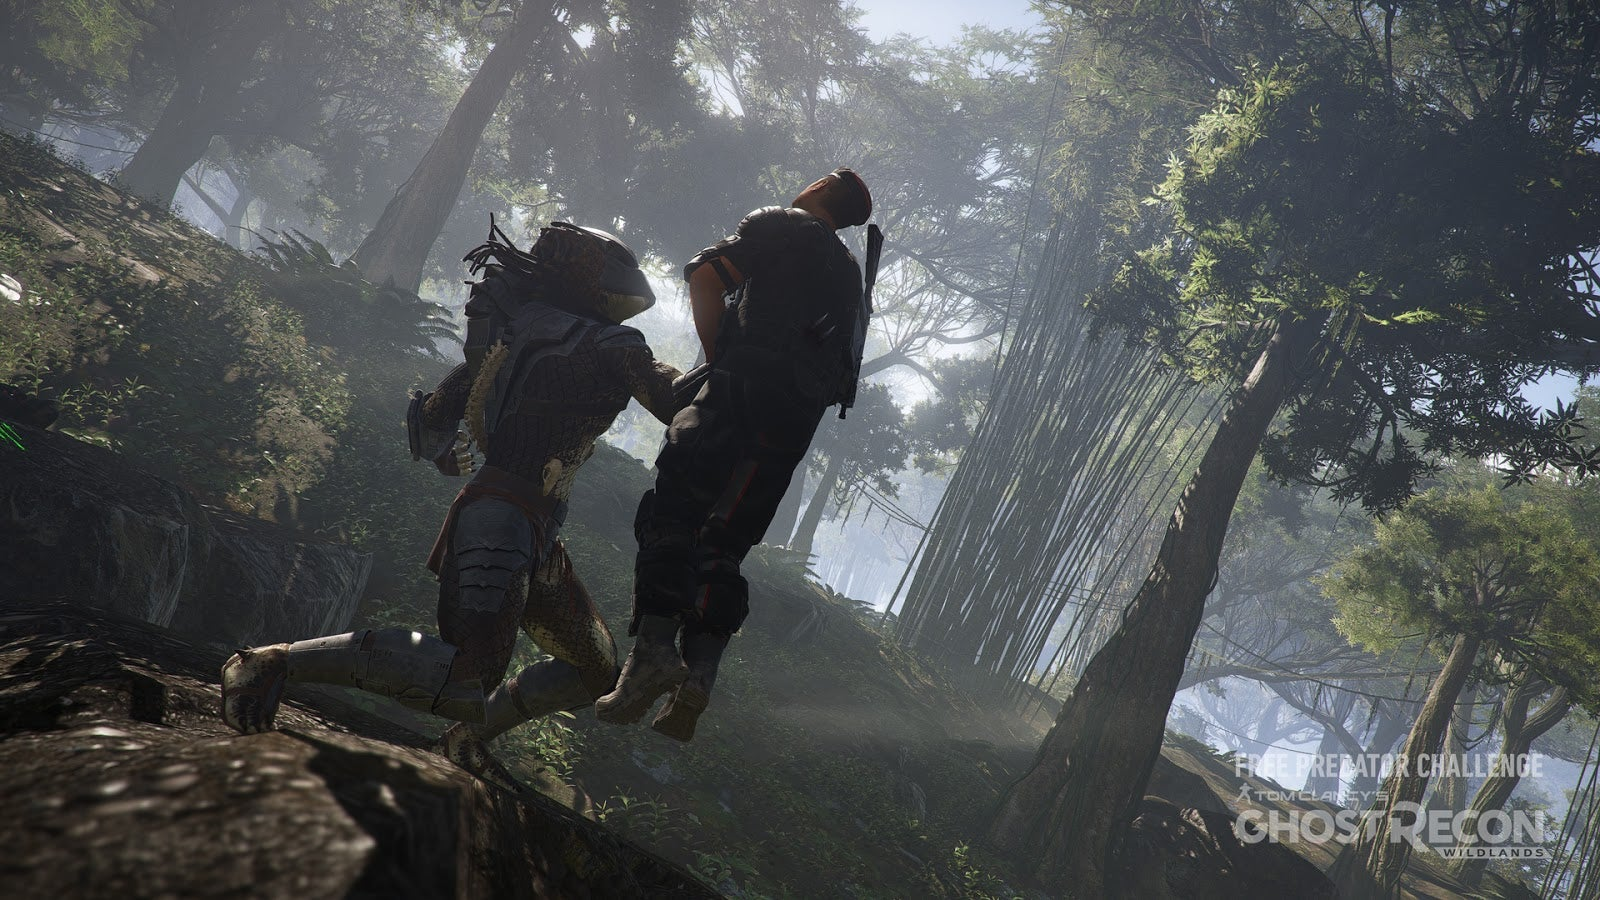 Adding Predator To Ghost Recon Is A Cool Idea That Doesn't Work